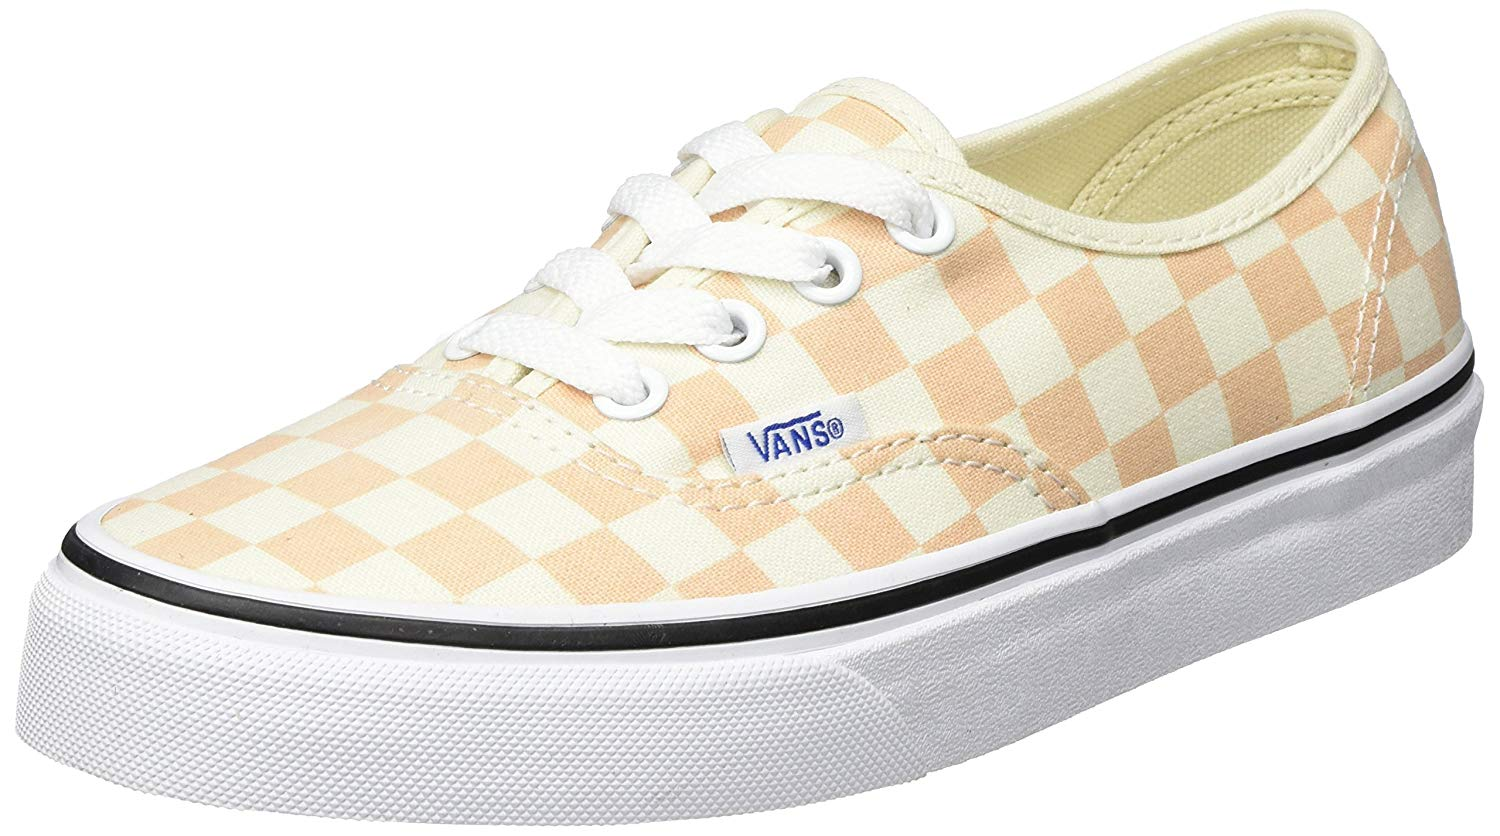 Vans Authentic Checkerboard Apricot Ice Men's Skate Shoes Size 10